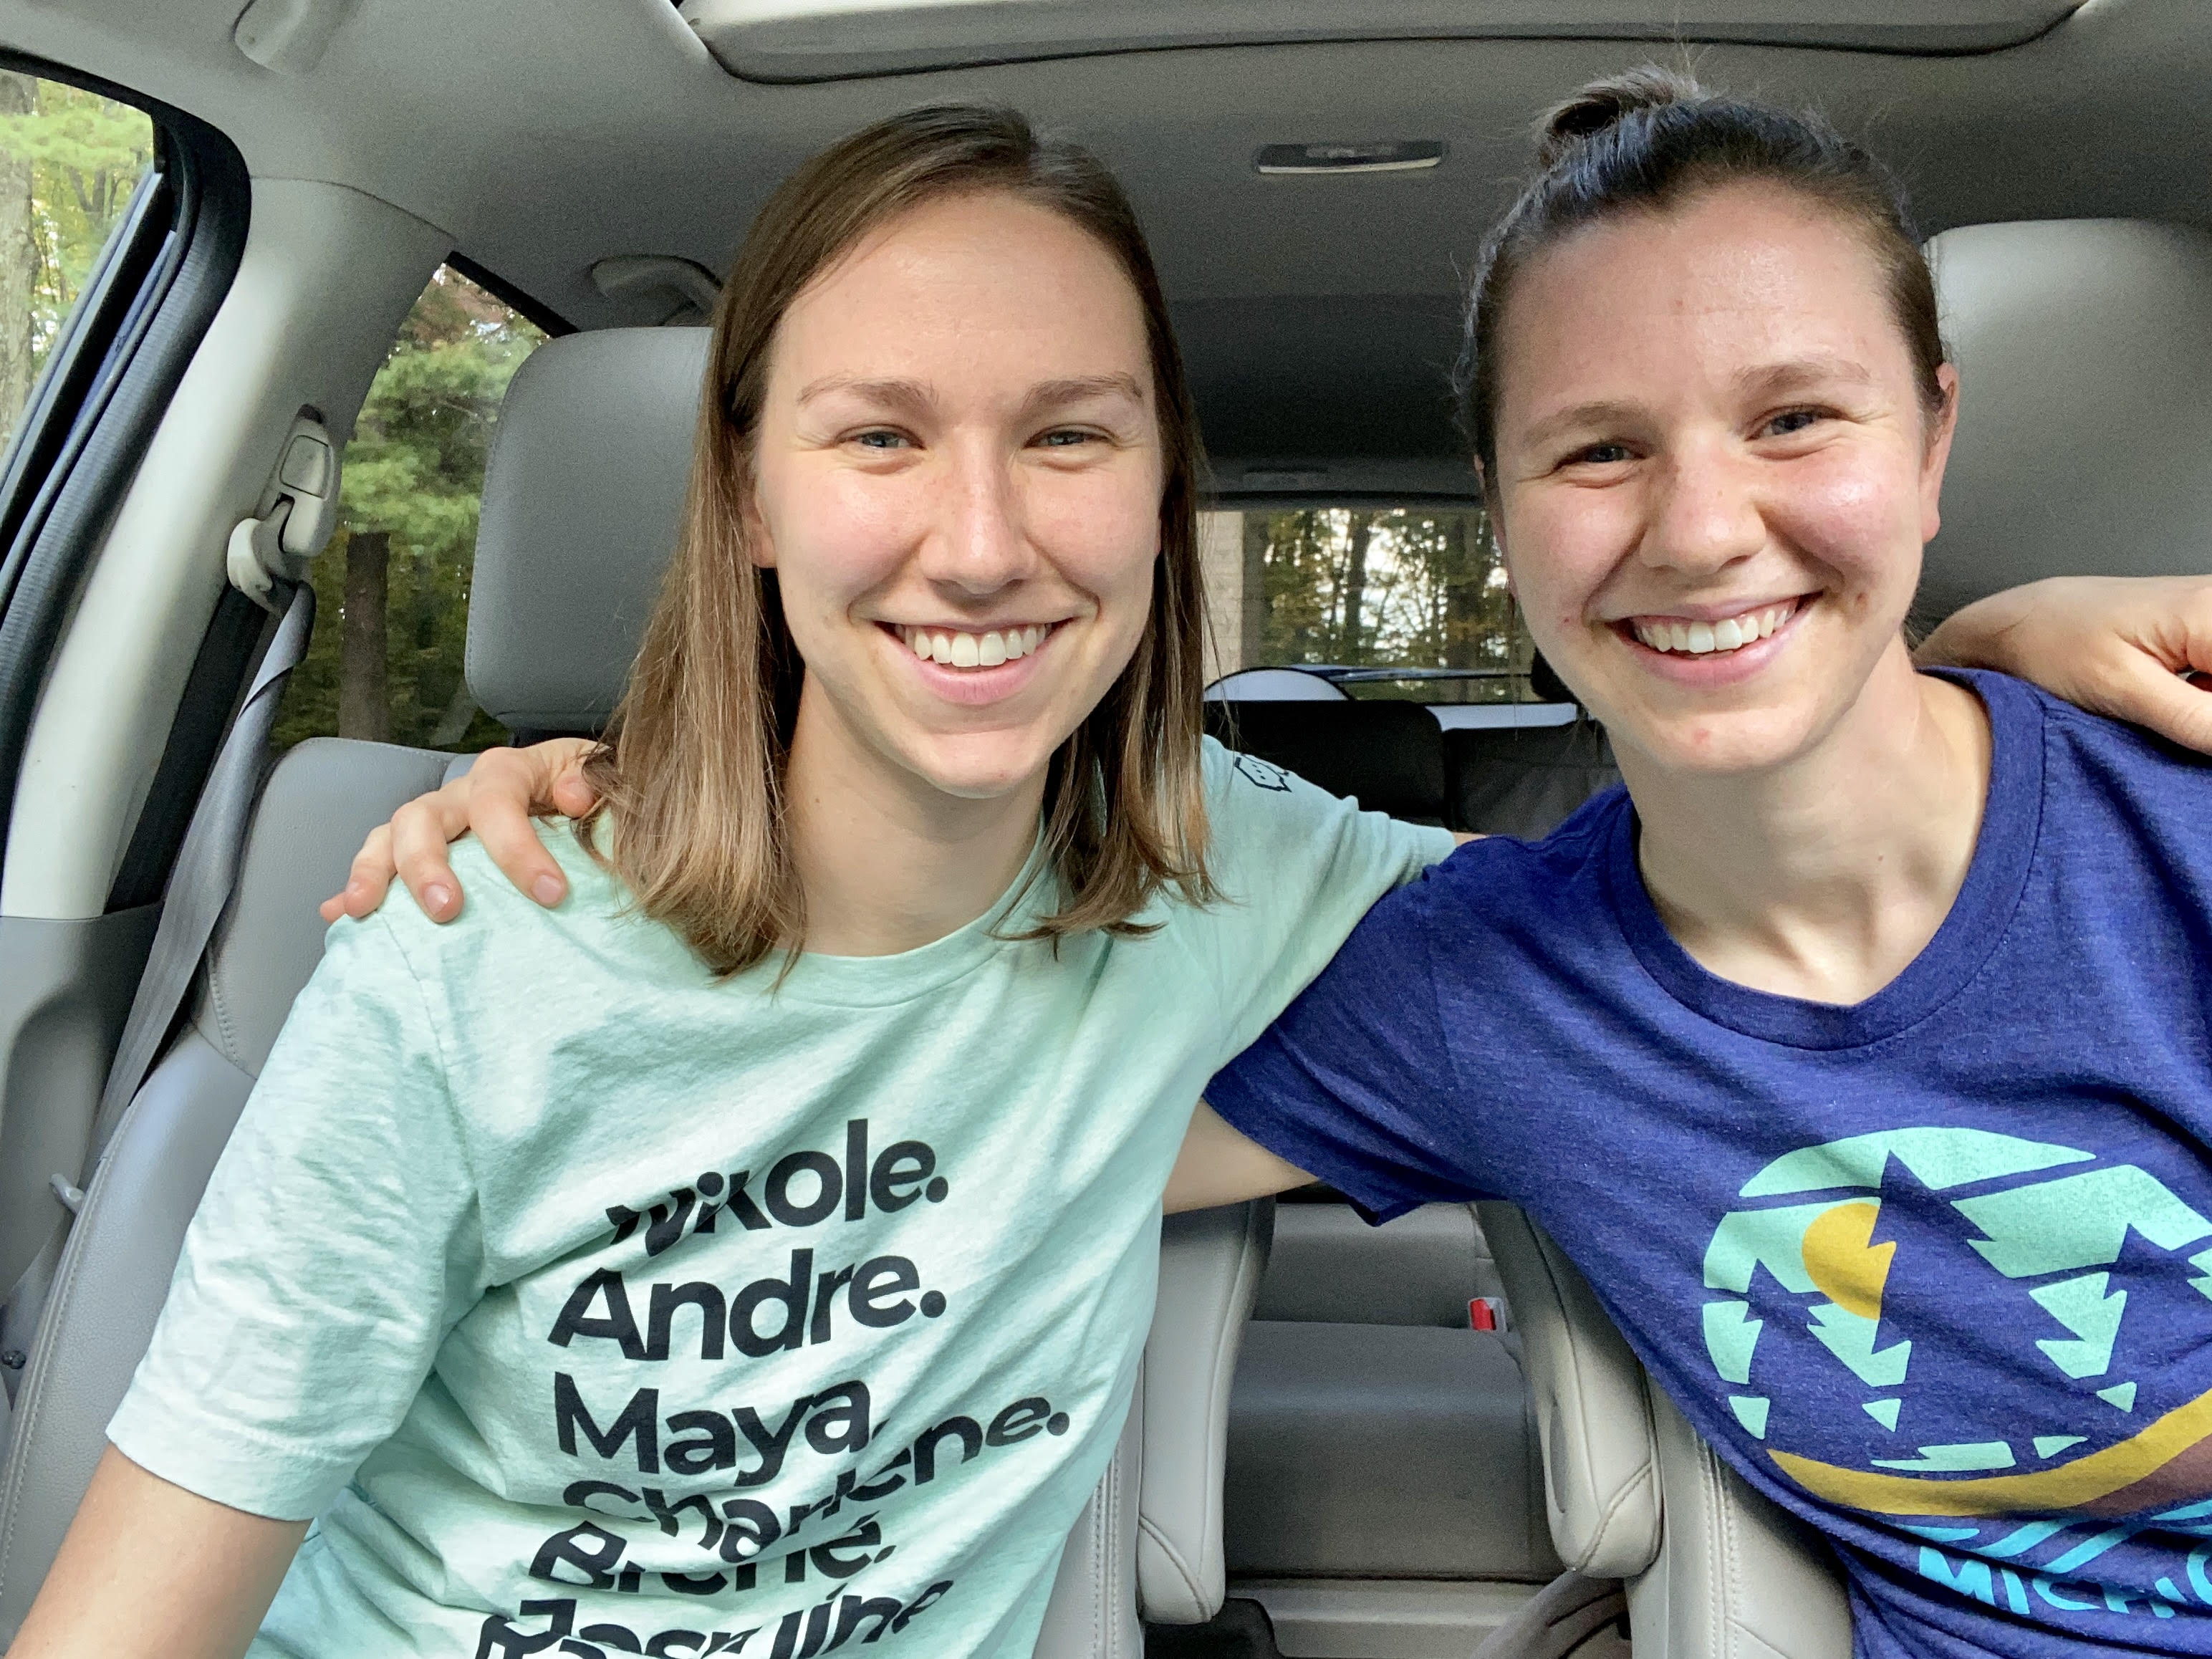 Two girls in a car.